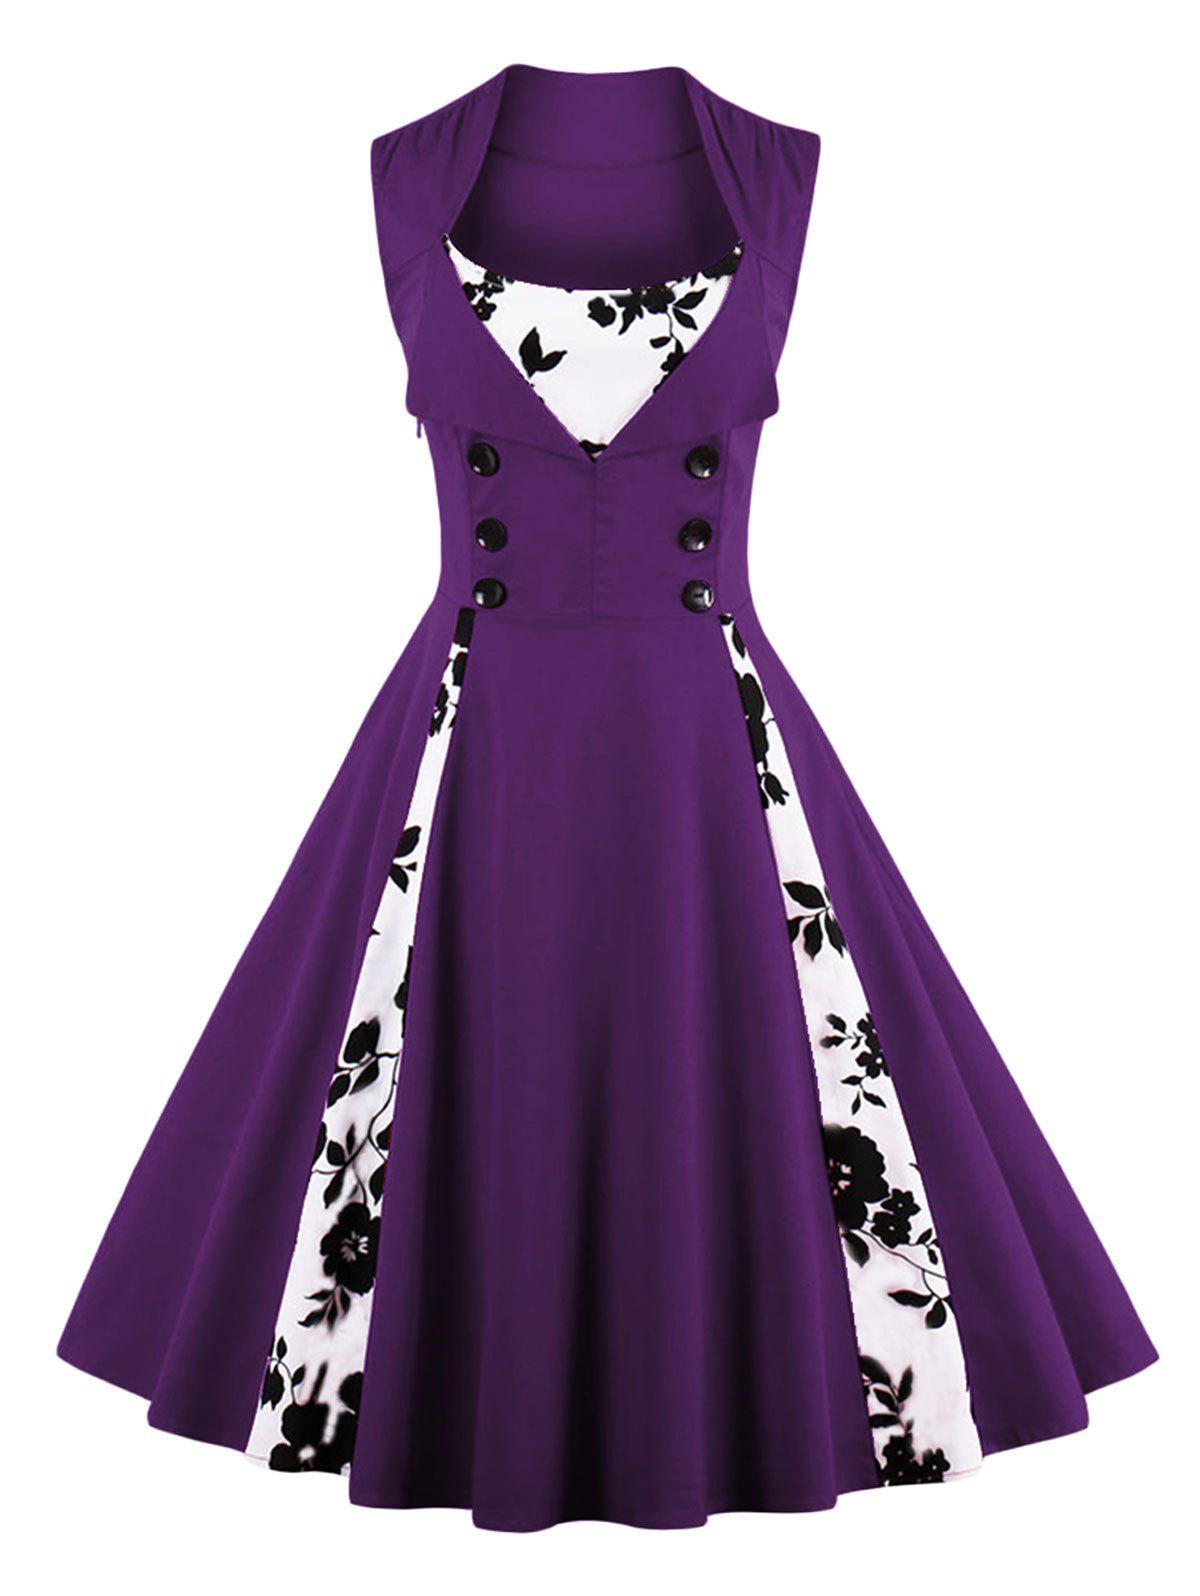 Vintage Floral Prom Swing DressWOMEN<br><br>Size: S; Color: DEEP PURPLE; Style: Vintage; Material: Cotton,Polyester; Silhouette: A-Line; Dresses Length: Knee-Length; Neckline: Scoop Neck; Sleeve Length: Sleeveless; Pattern Type: Floral; With Belt: No; Season: Fall,Spring,Summer; Weight: 0.4000kg; Package Contents: 1 x Dress;